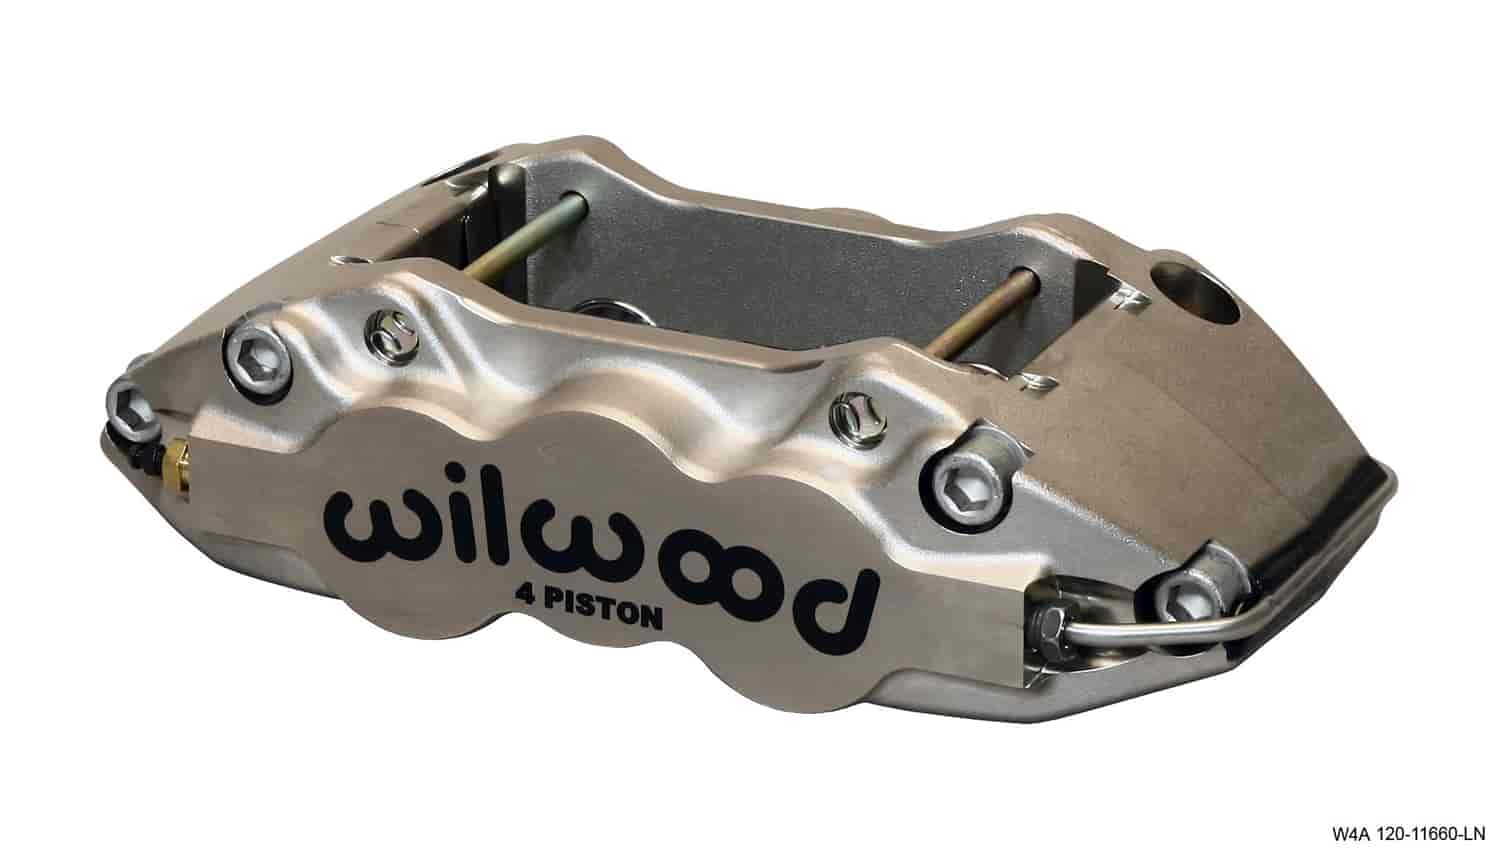 Wilwood 120-11660-LN - Wilwood W4A 4 Piston Forged Aluminum Brake Caliper